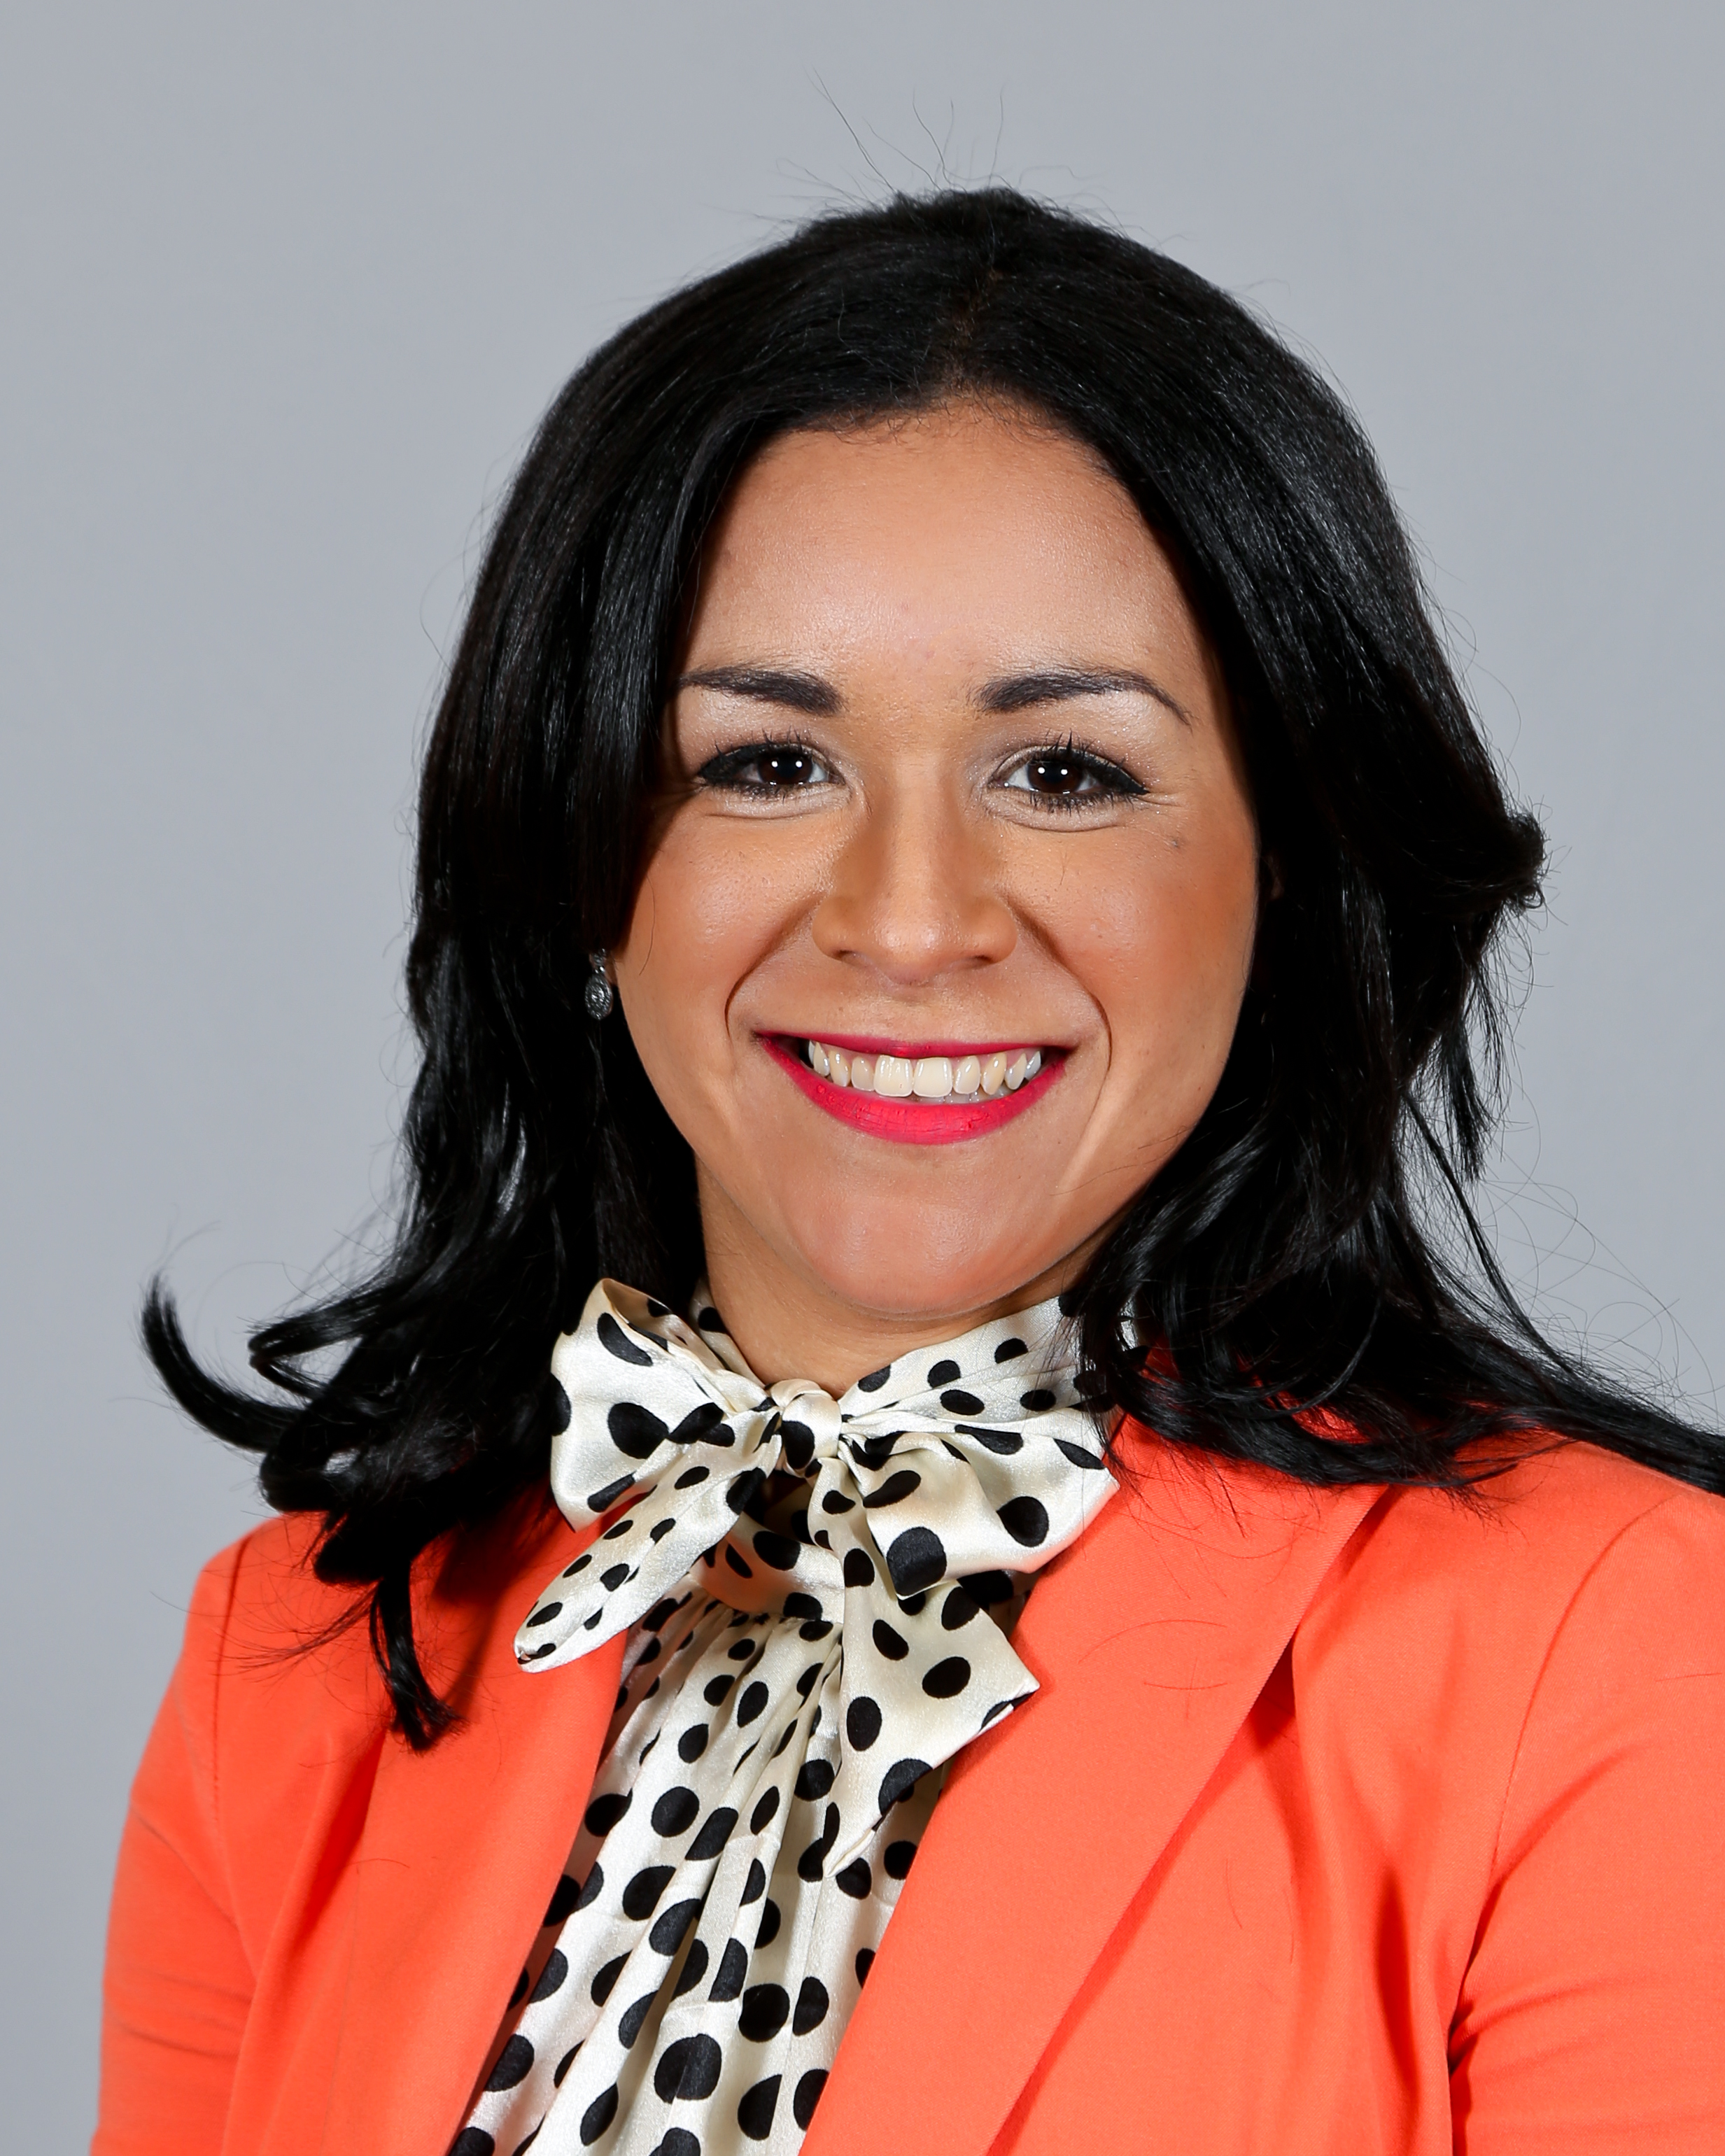 Keyla Soto Hidalgo Portrait Photo